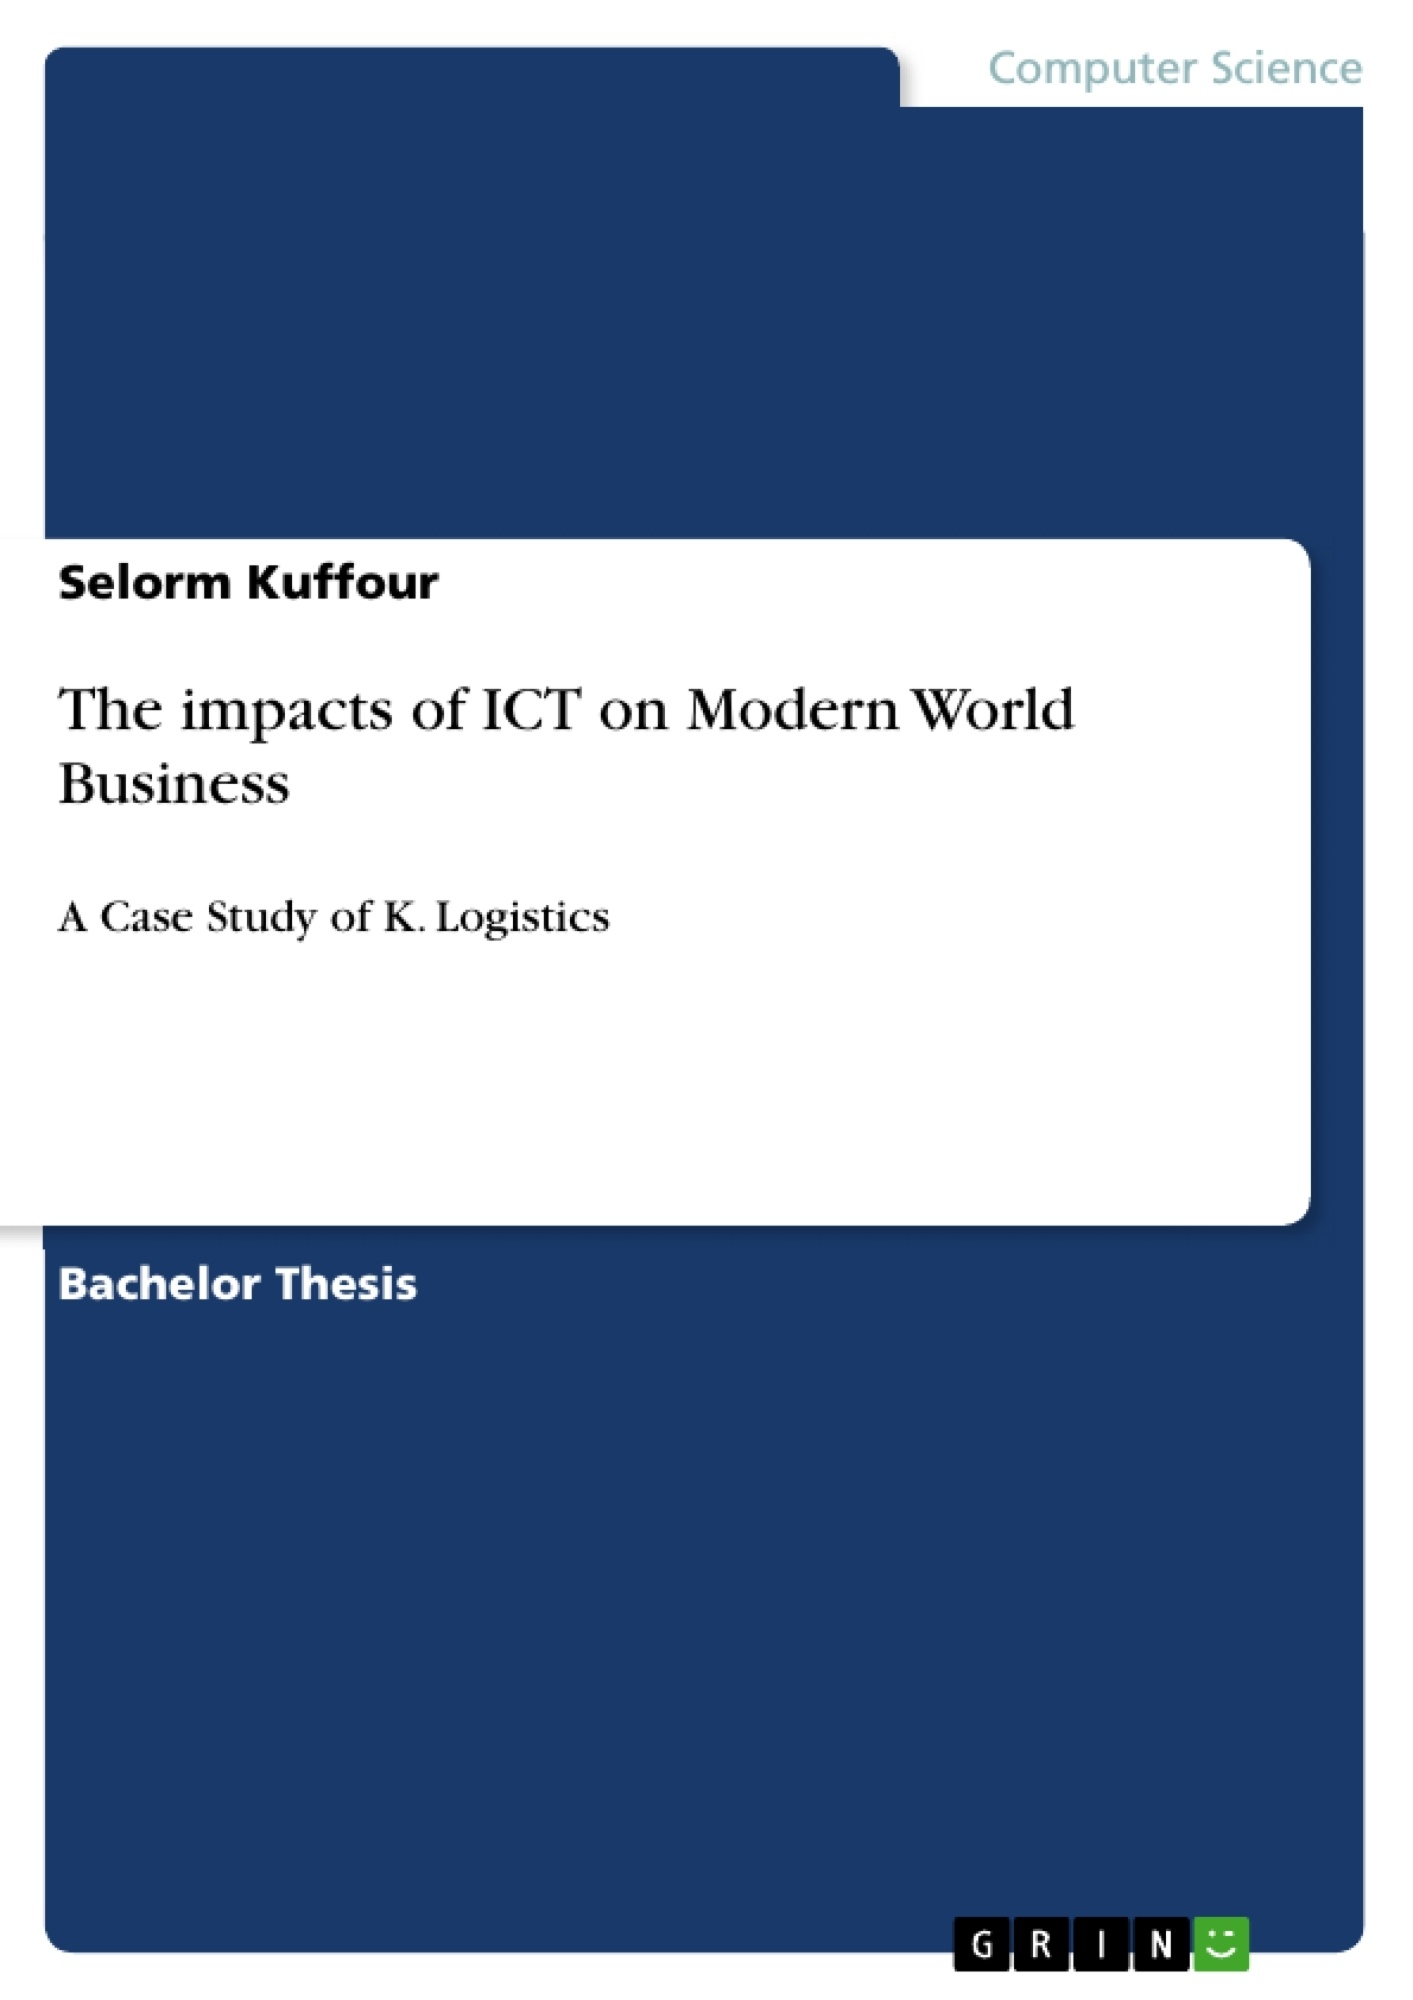 Title: The impacts of ICT on Modern World Business